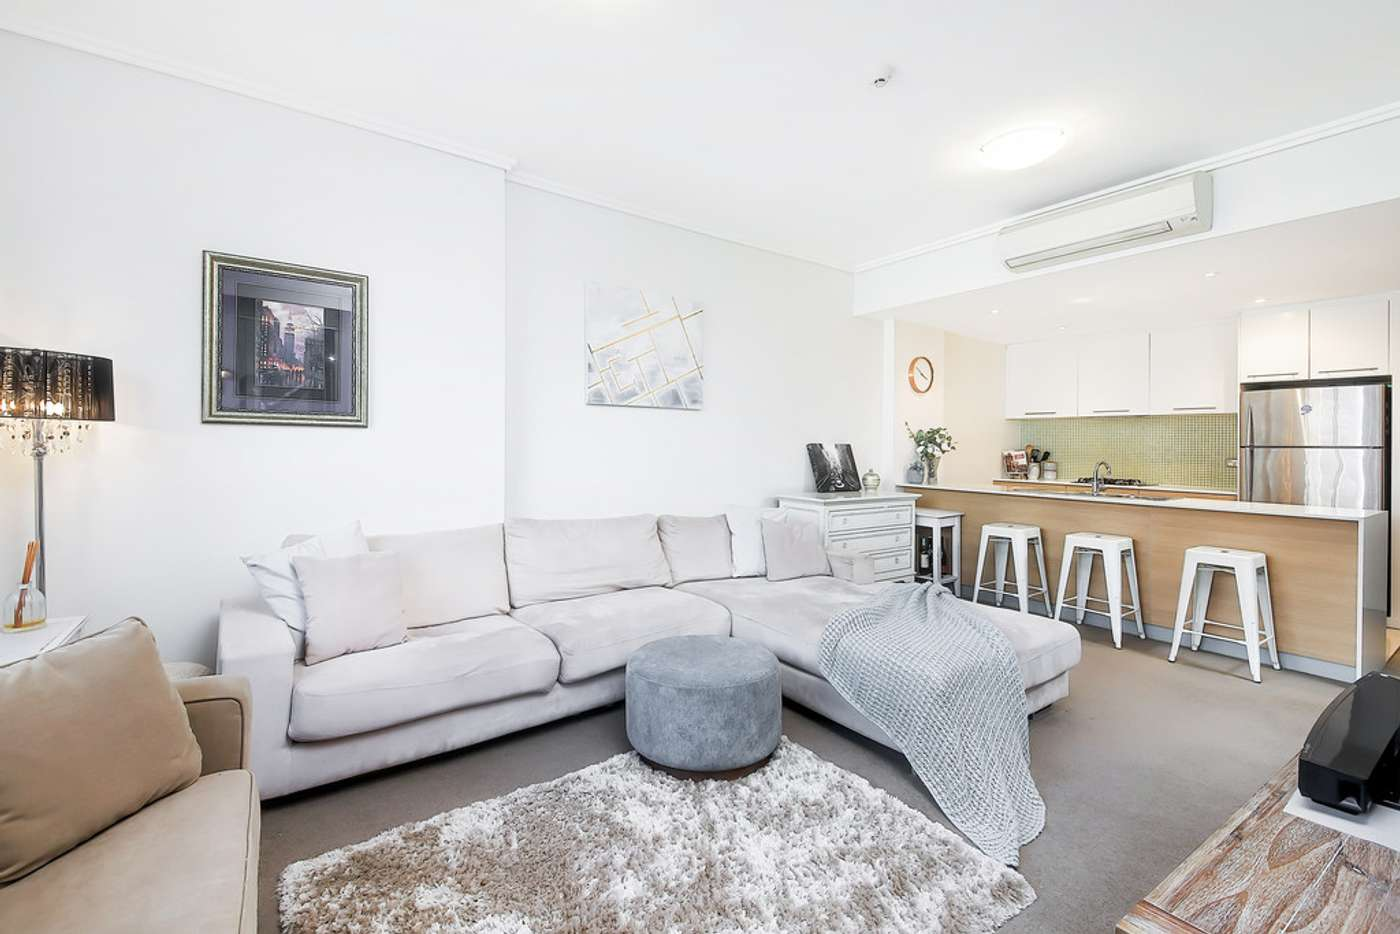 Main view of Homely apartment listing, 111/1 Avenue Of Europe, Newington NSW 2127